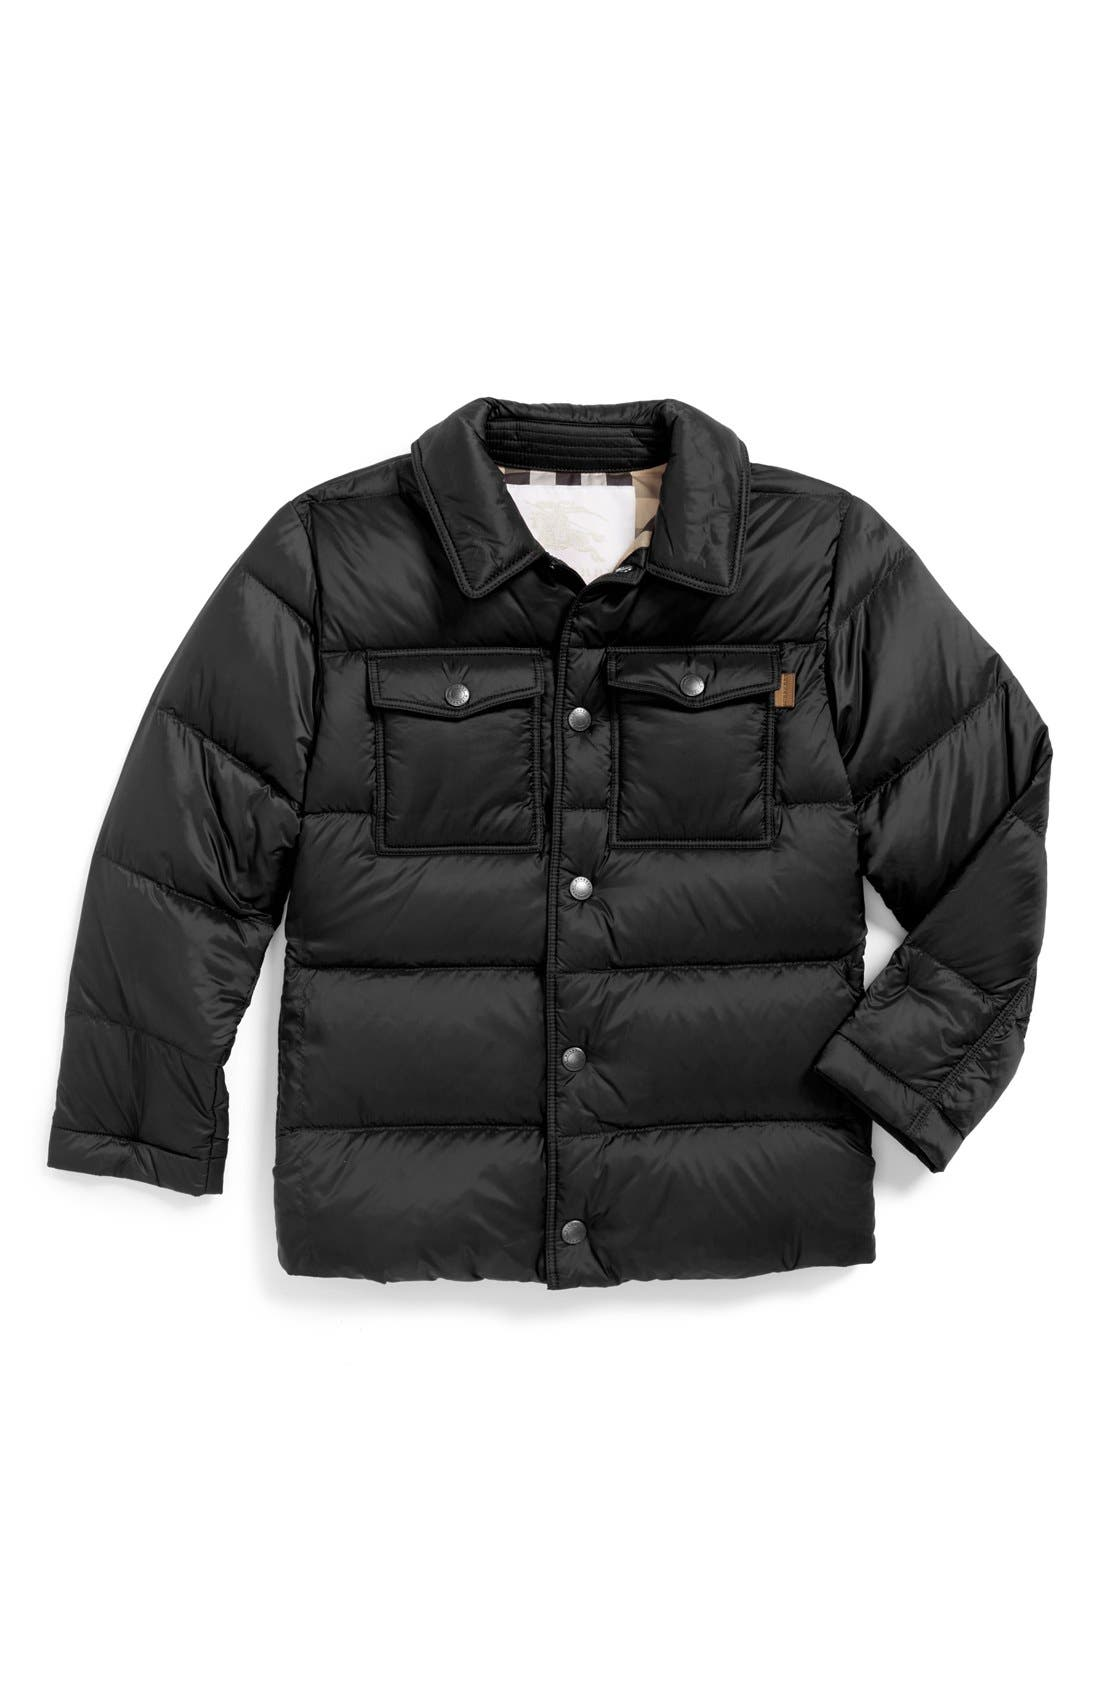 Alternate Image 1 Selected - Burberry Quilted Down Jacket (Baby Boys)